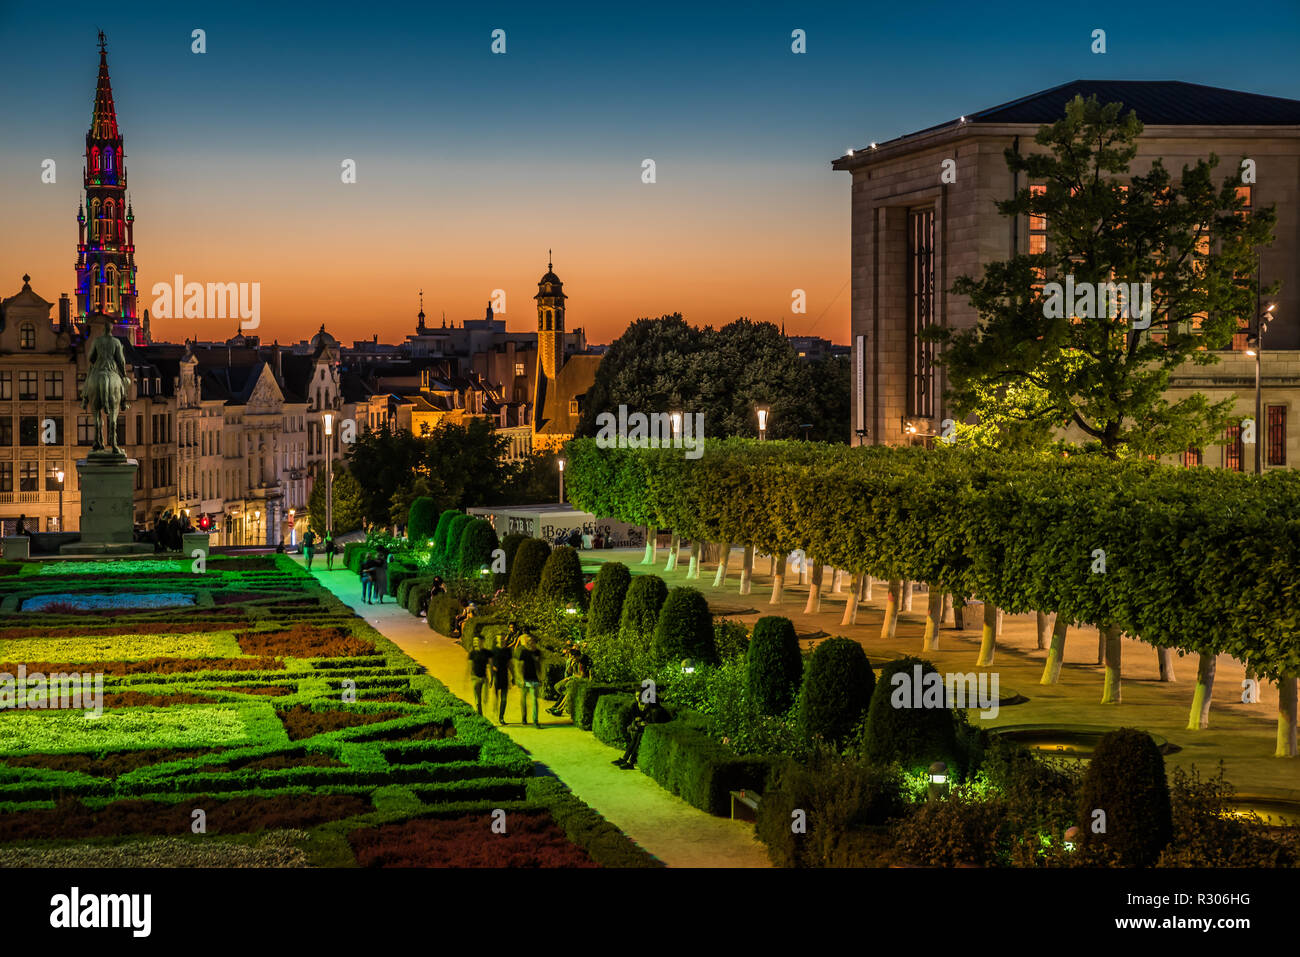 Panoramic view over the Brussels city center at Mont des Arts during a hot summer evening with a colorful sky in Brussels, Belgium - Stock Image